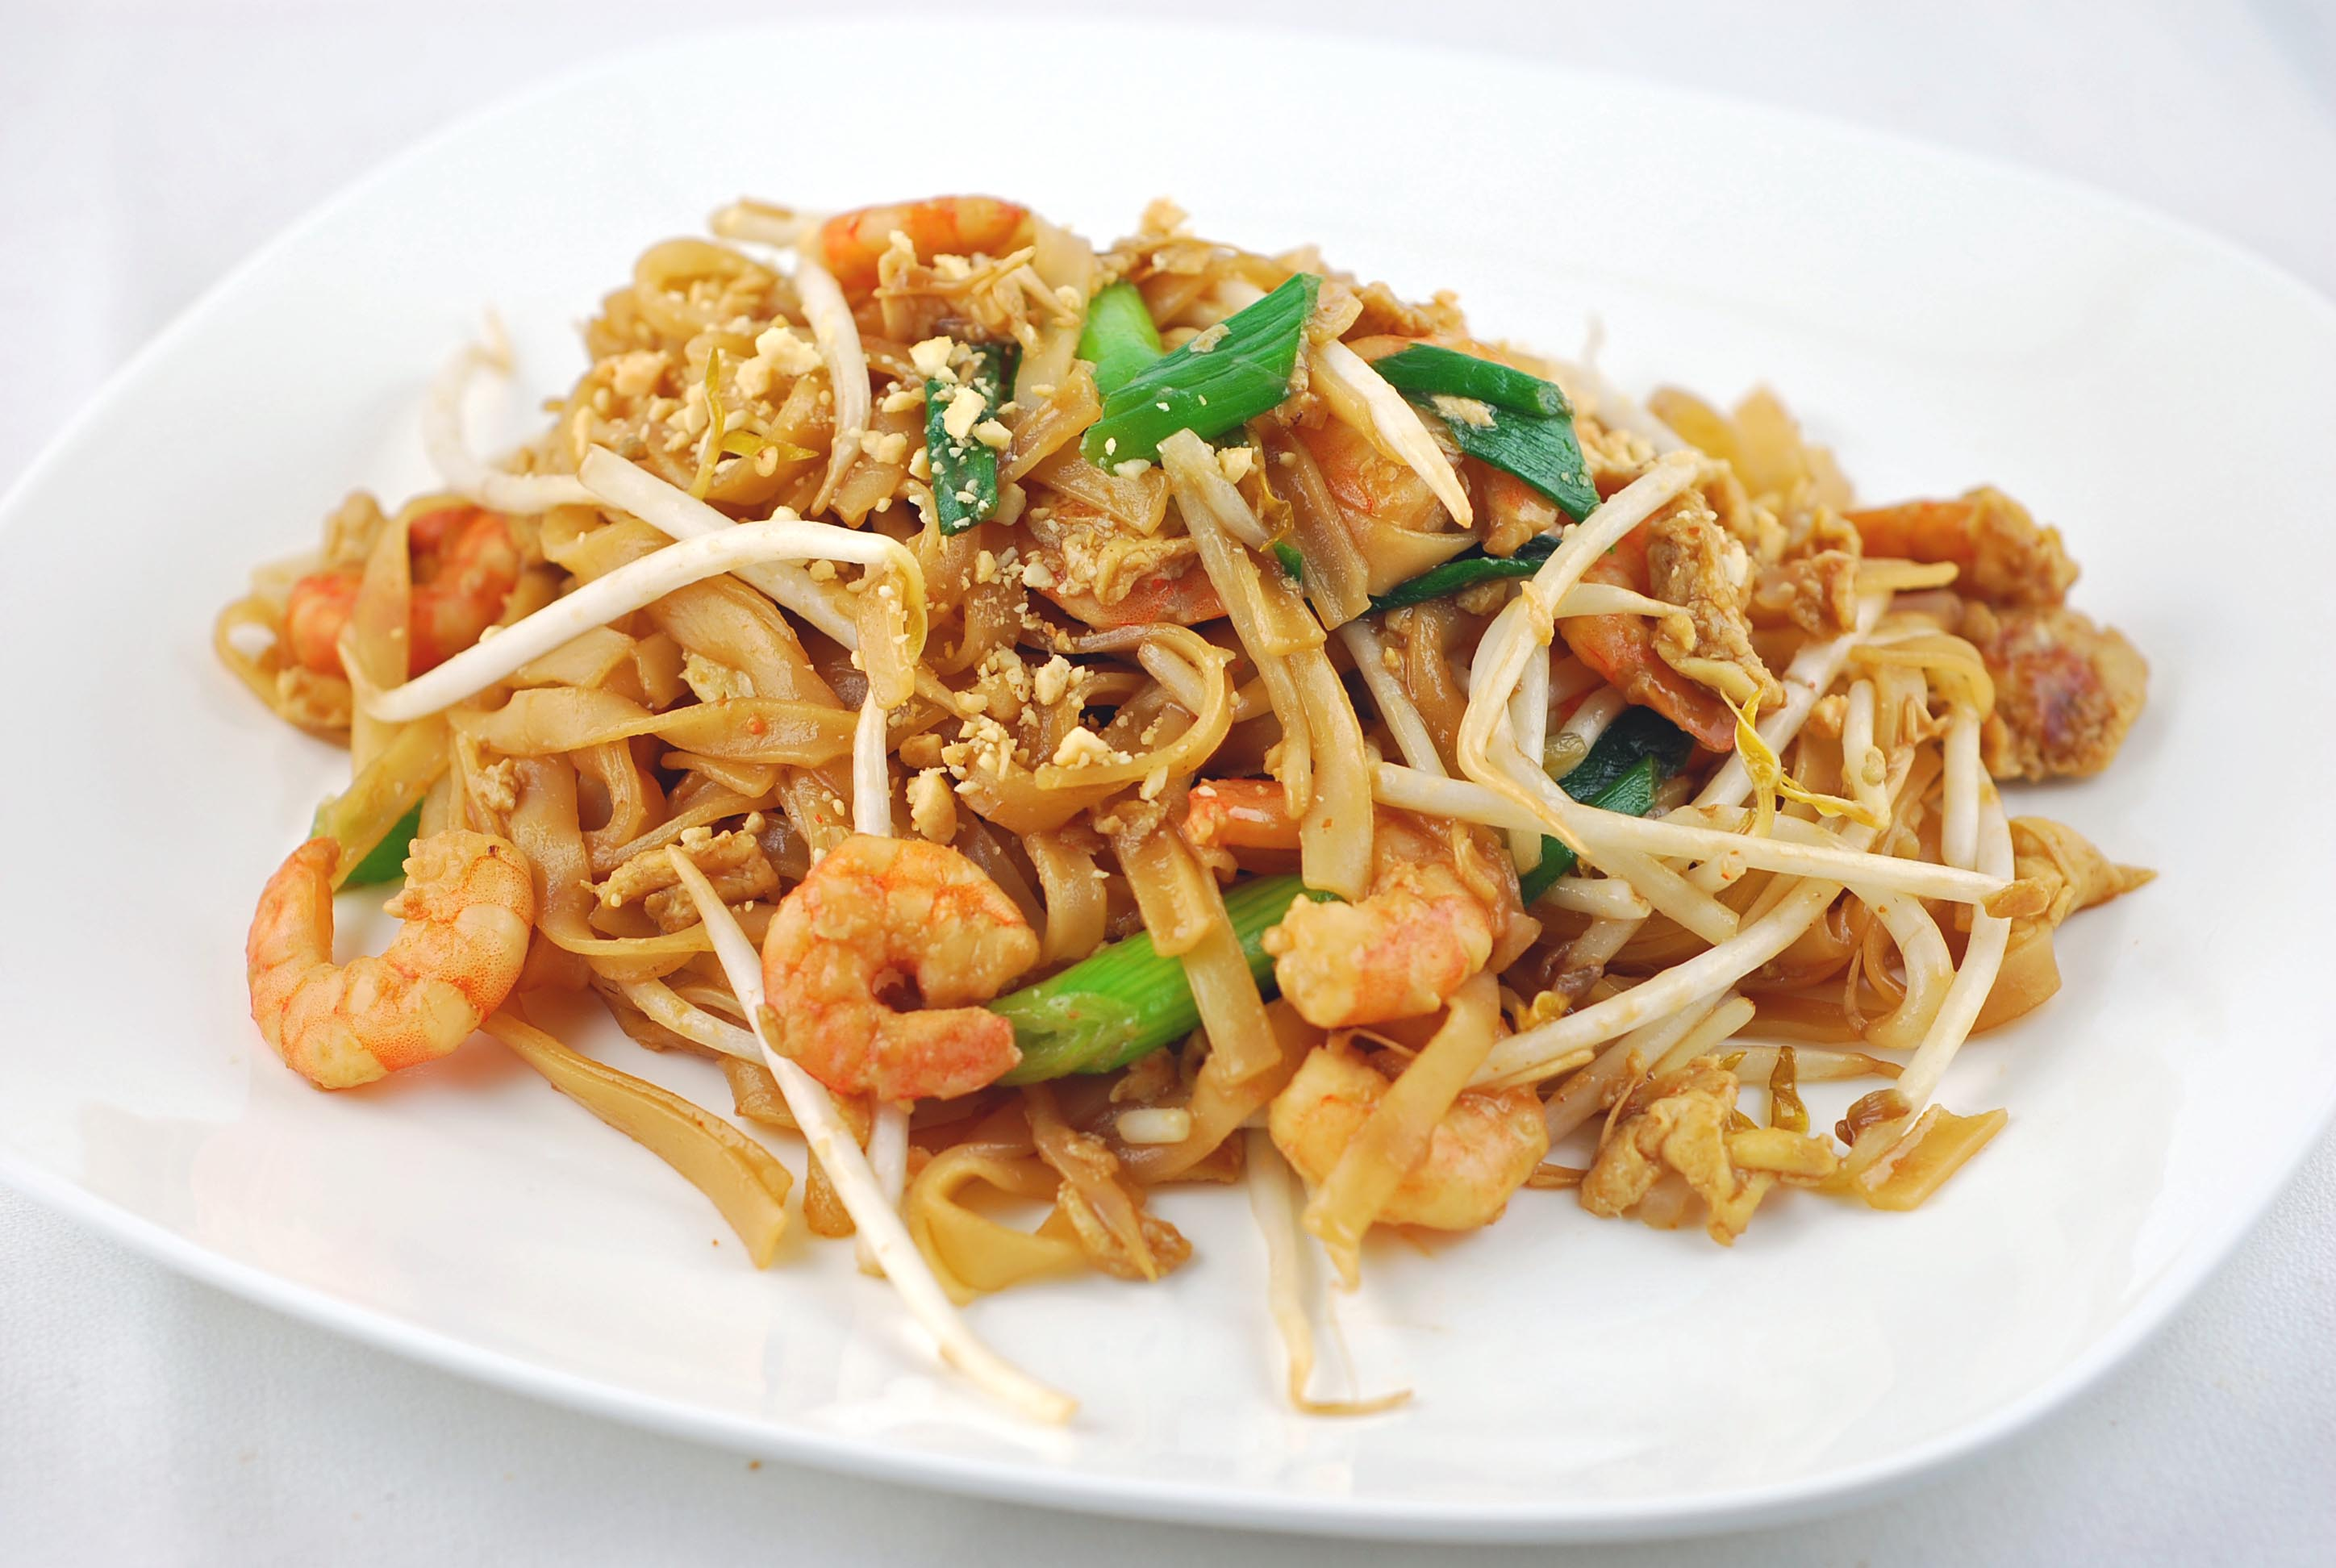 10 best pad thai dishes in hong kong foodpanda magazine for About thai cuisine